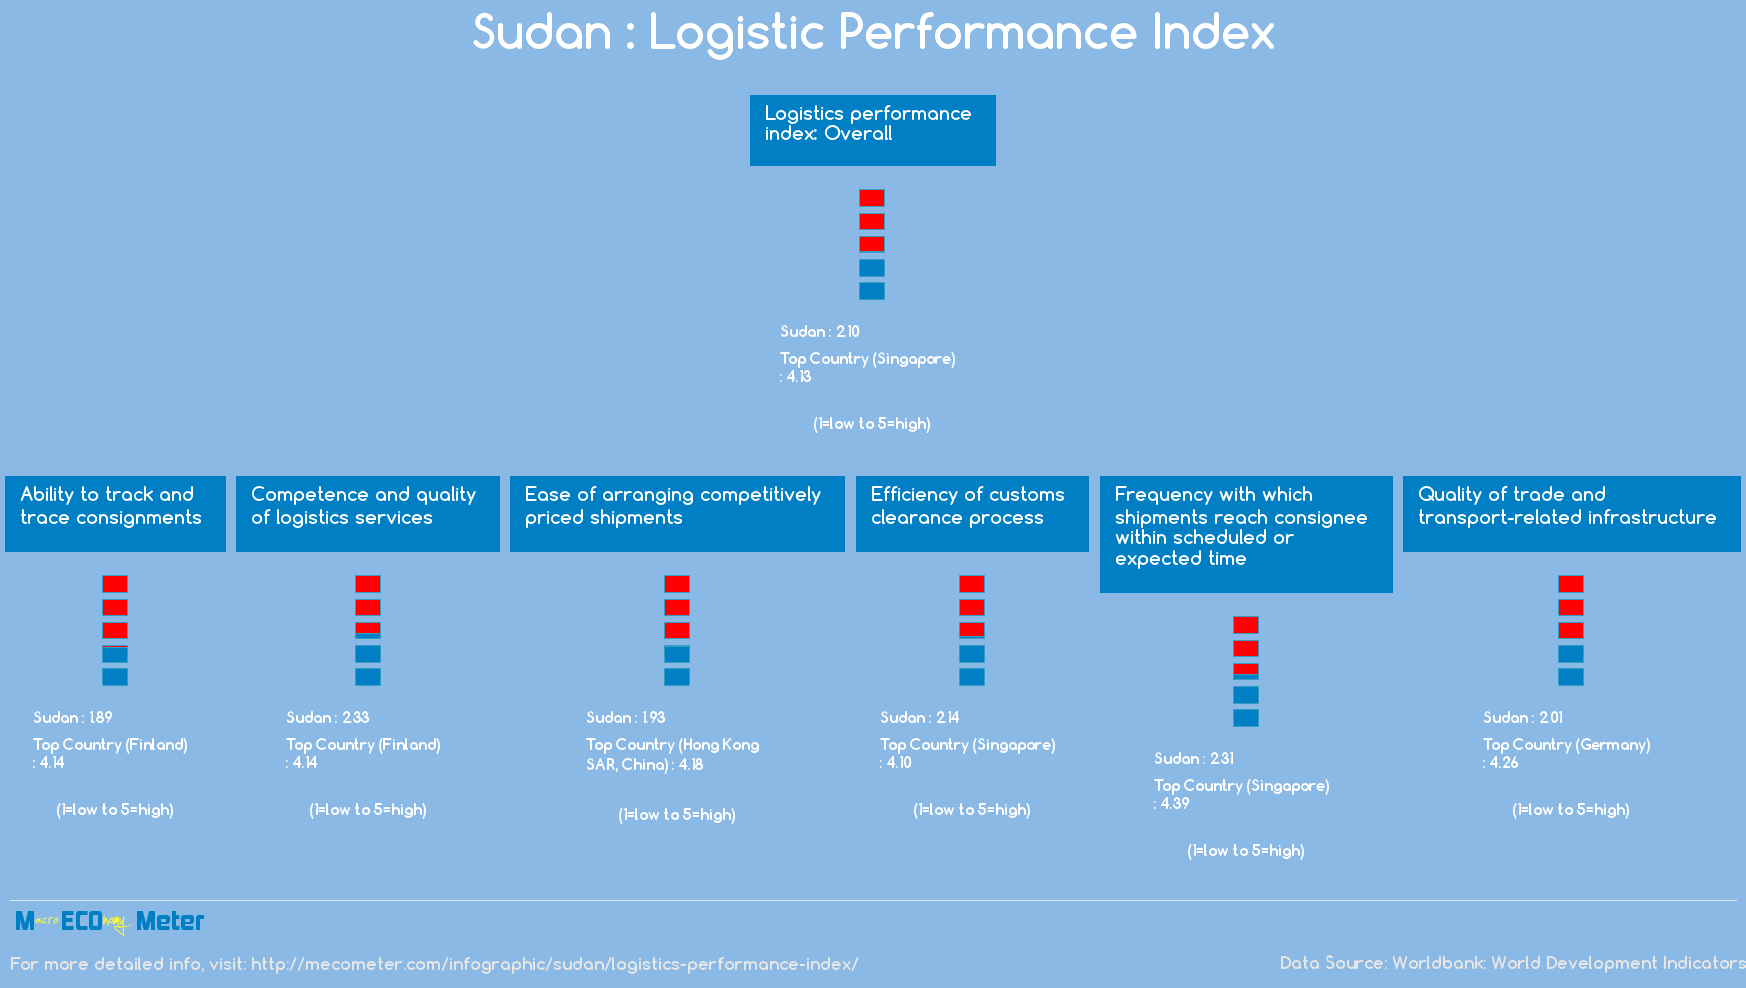 Sudan : Logistic Performance Index